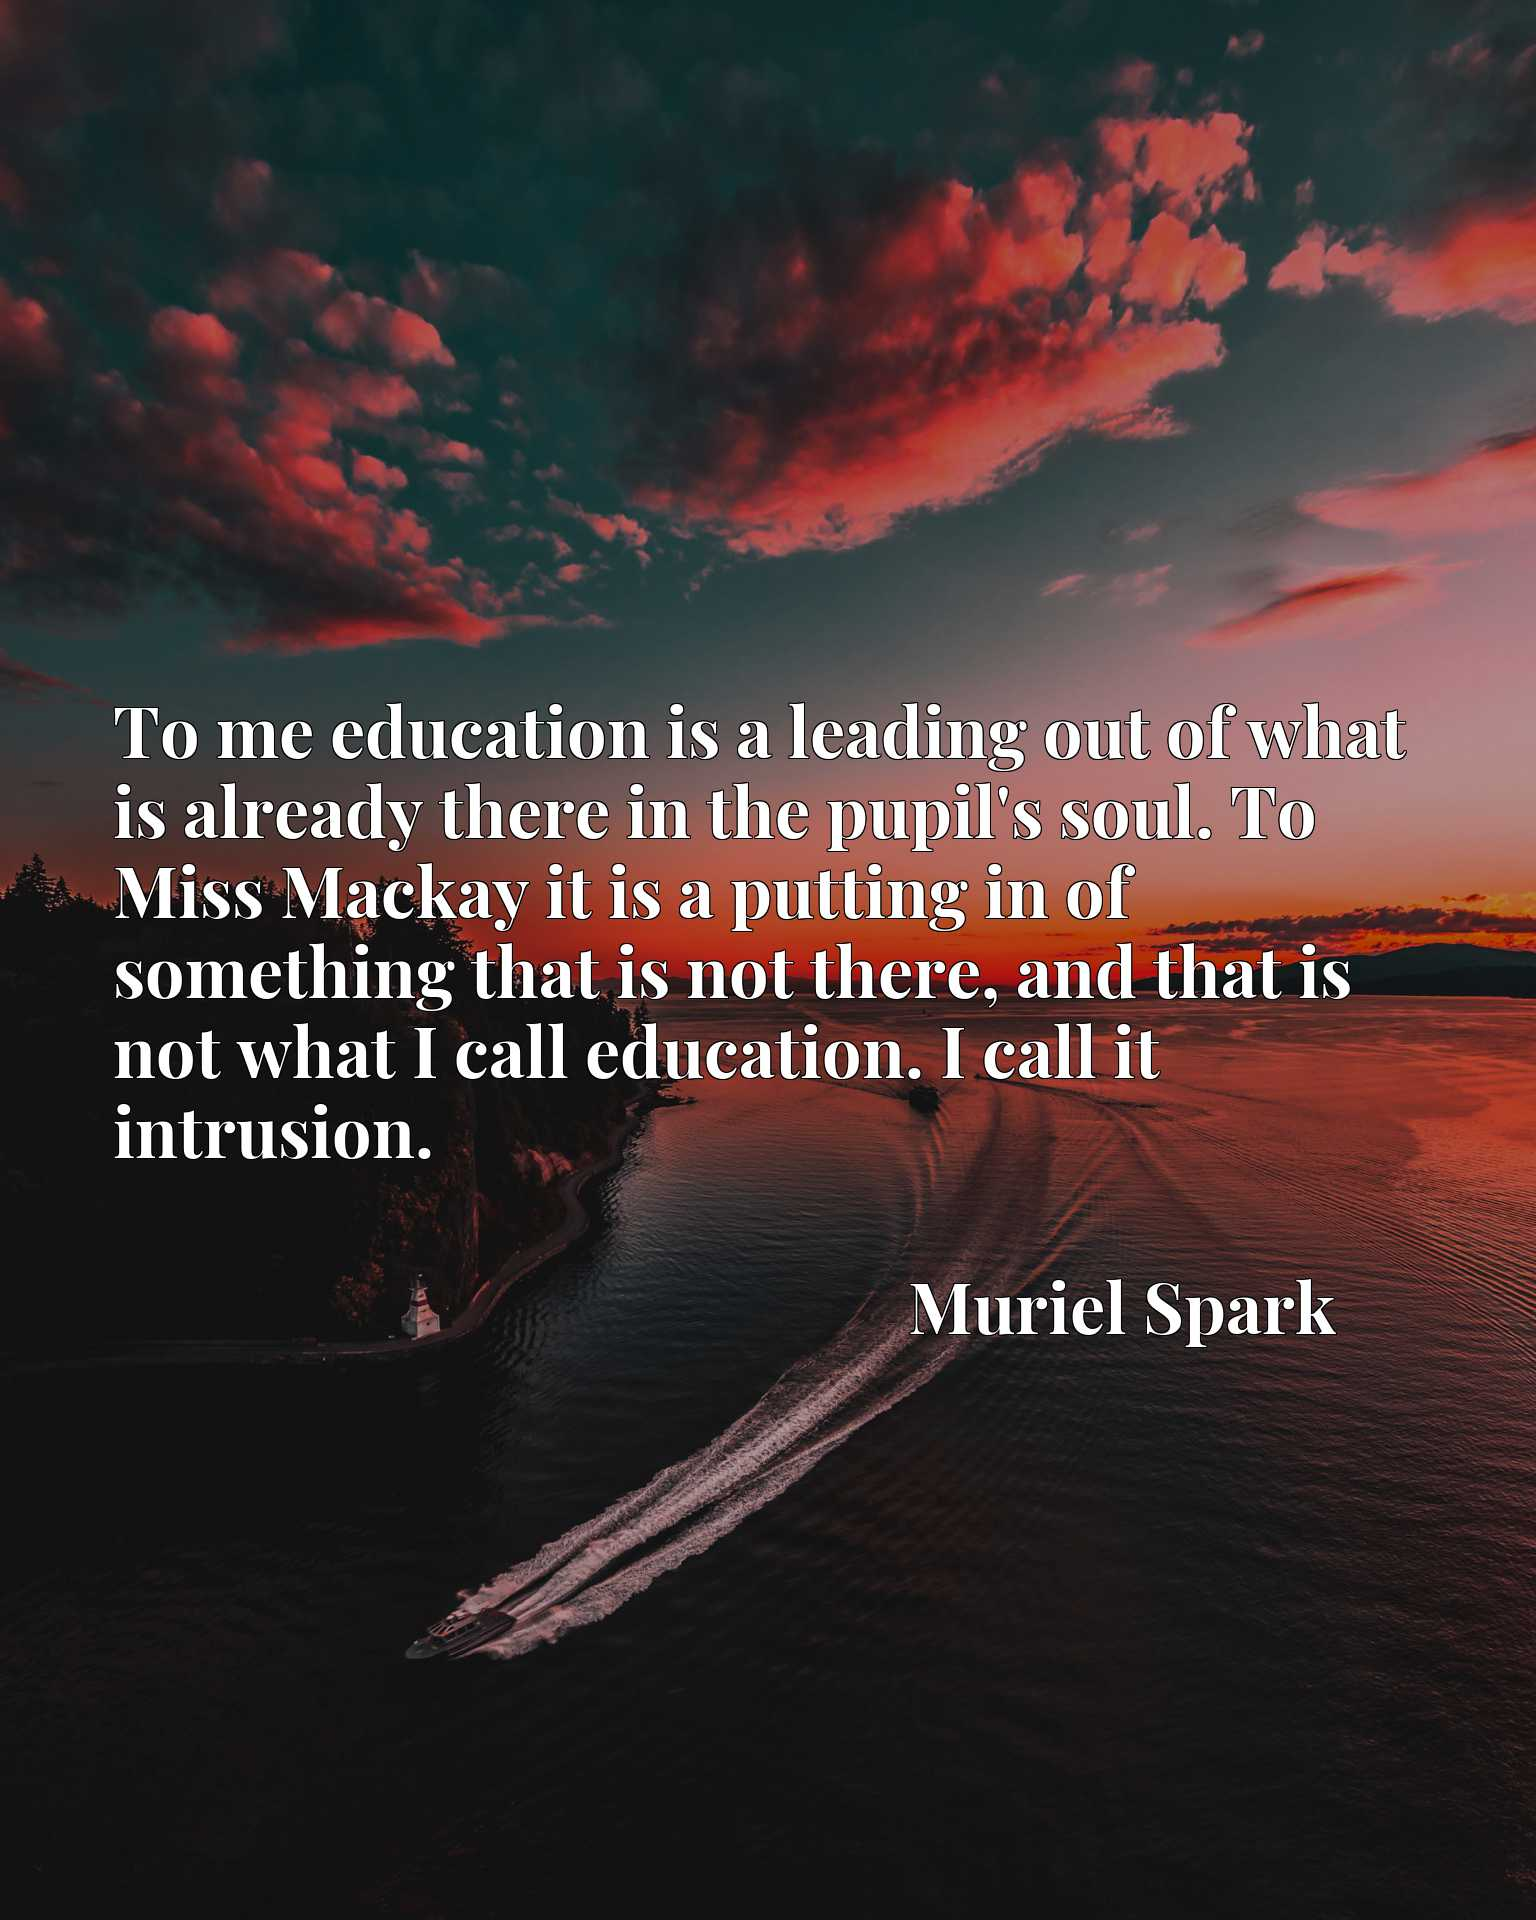 To me education is a leading out of what is already there in the pupil's soul. To Miss Mackay it is a putting in of something that is not there, and that is not what I call education. I call it intrusion.